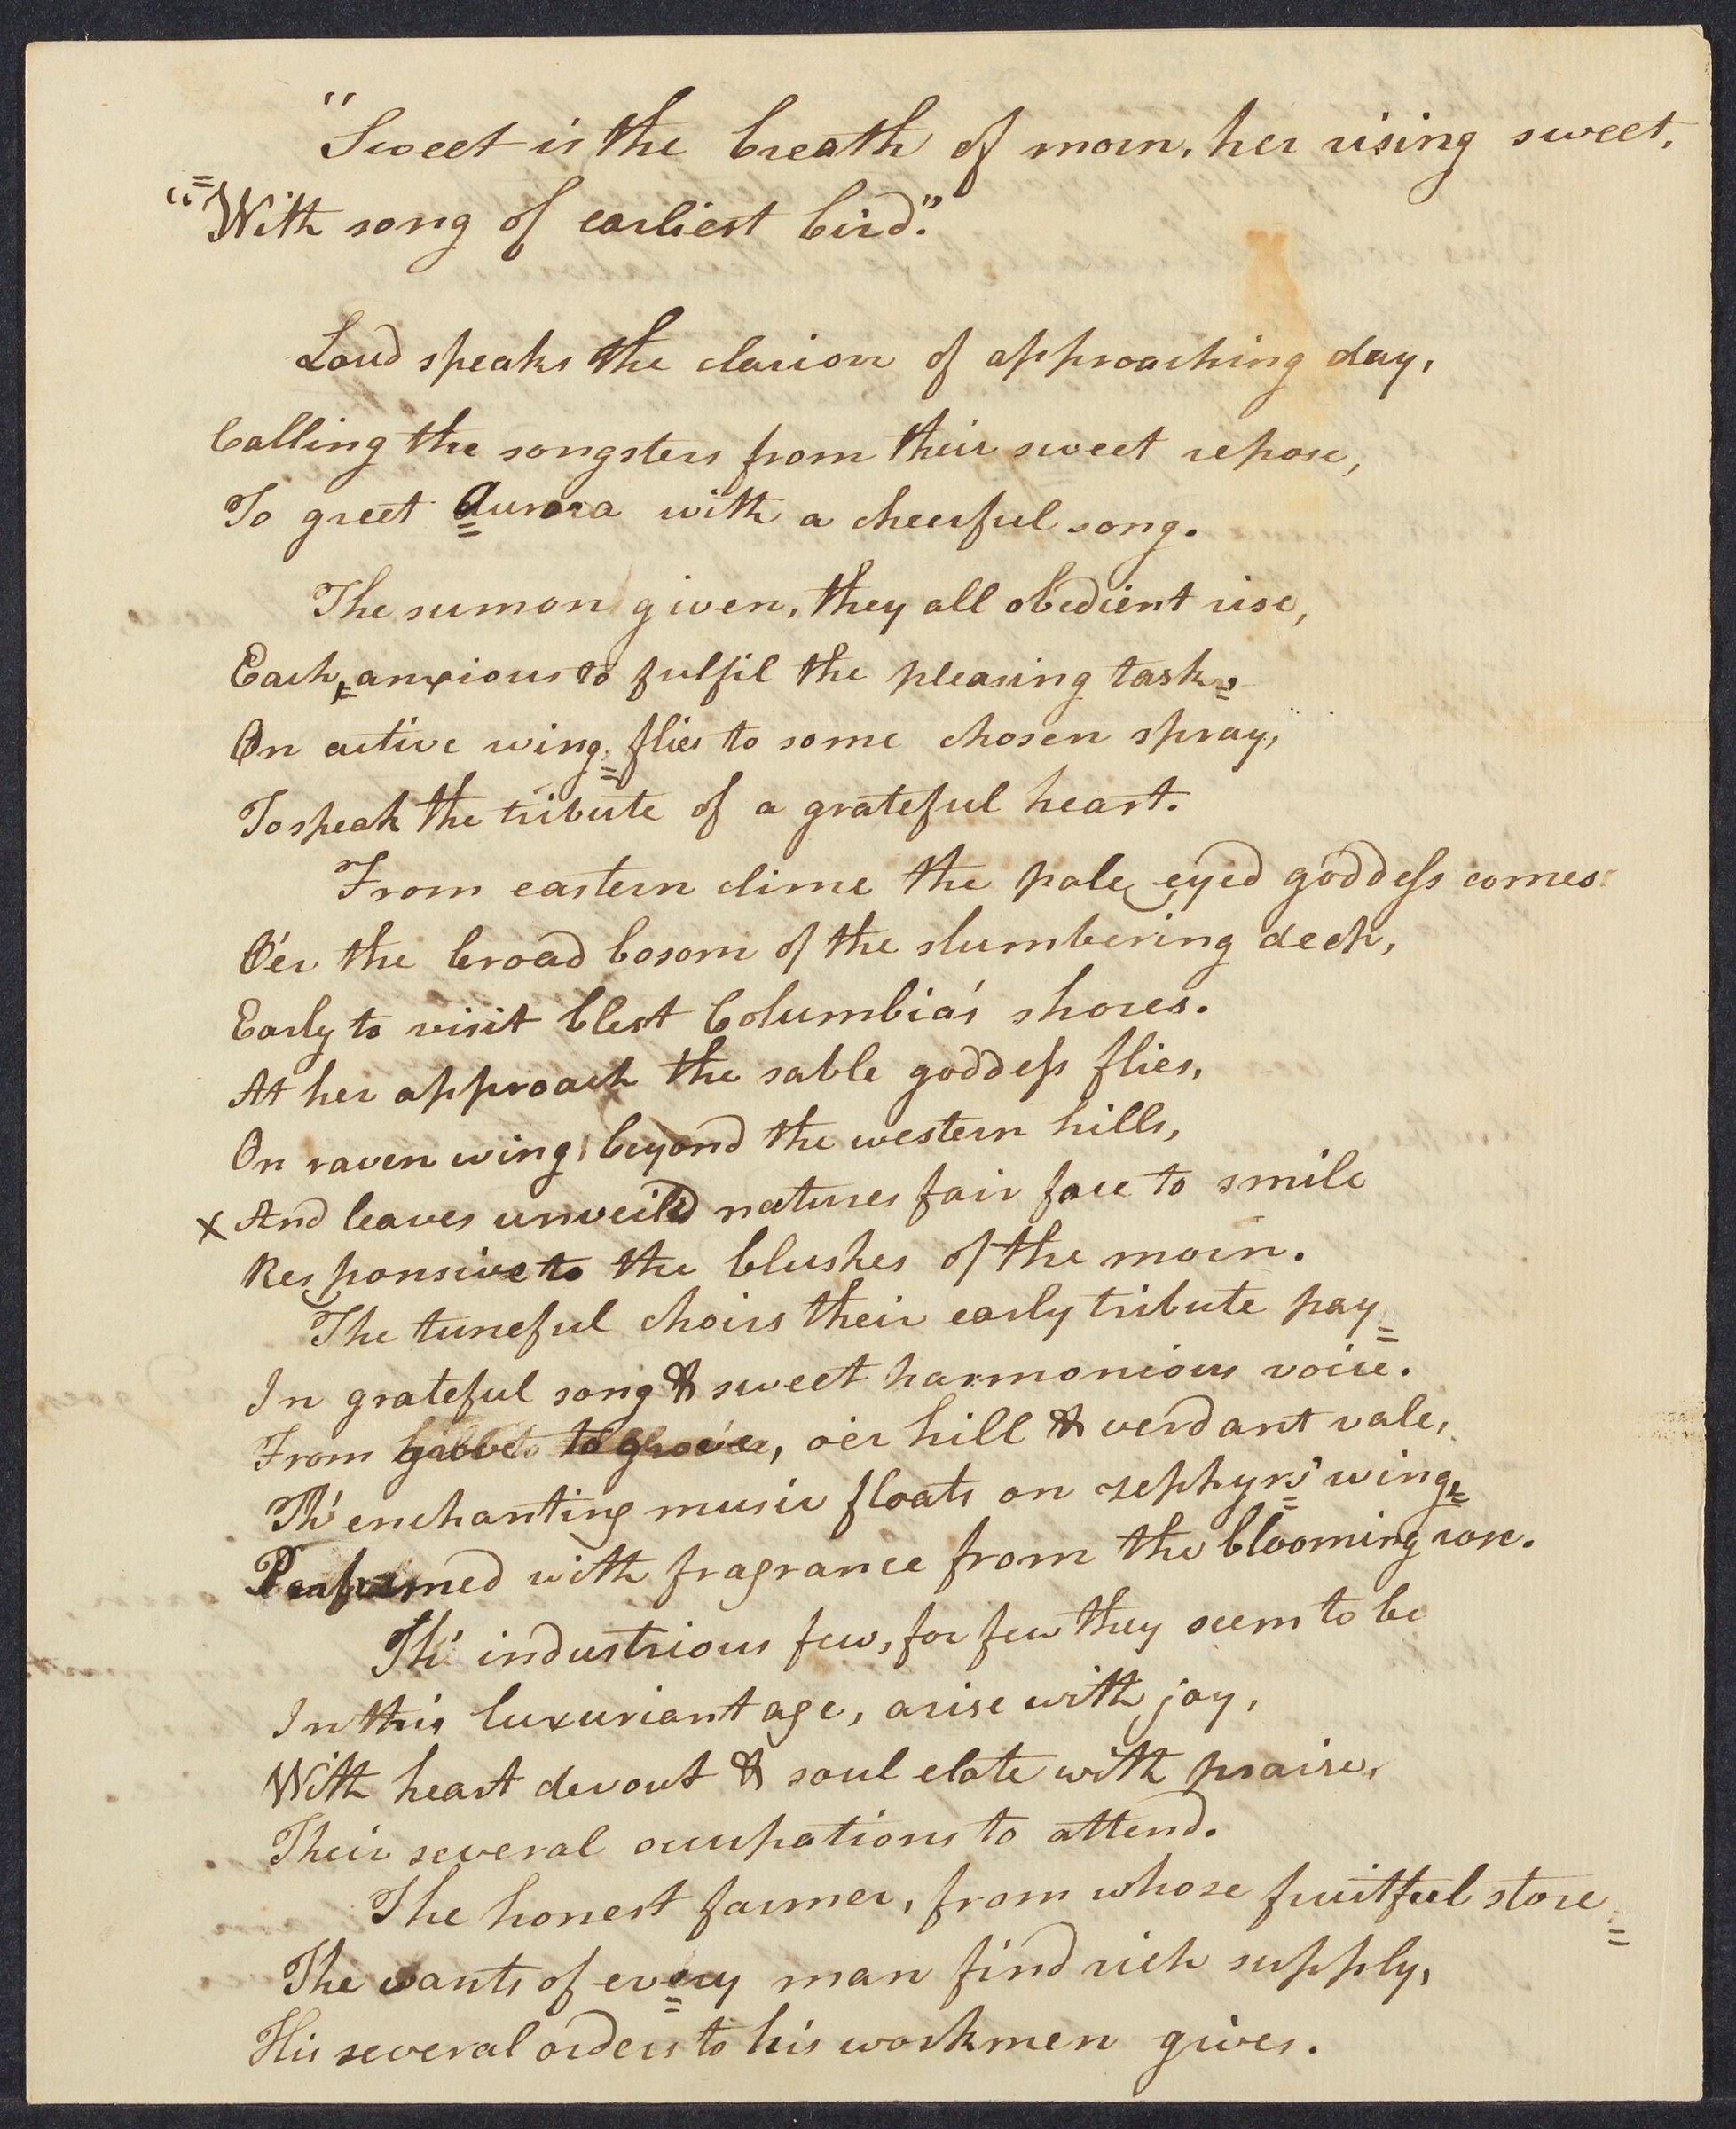 Student poem composed by Jacob Abbot Cummings, 1799 September 16